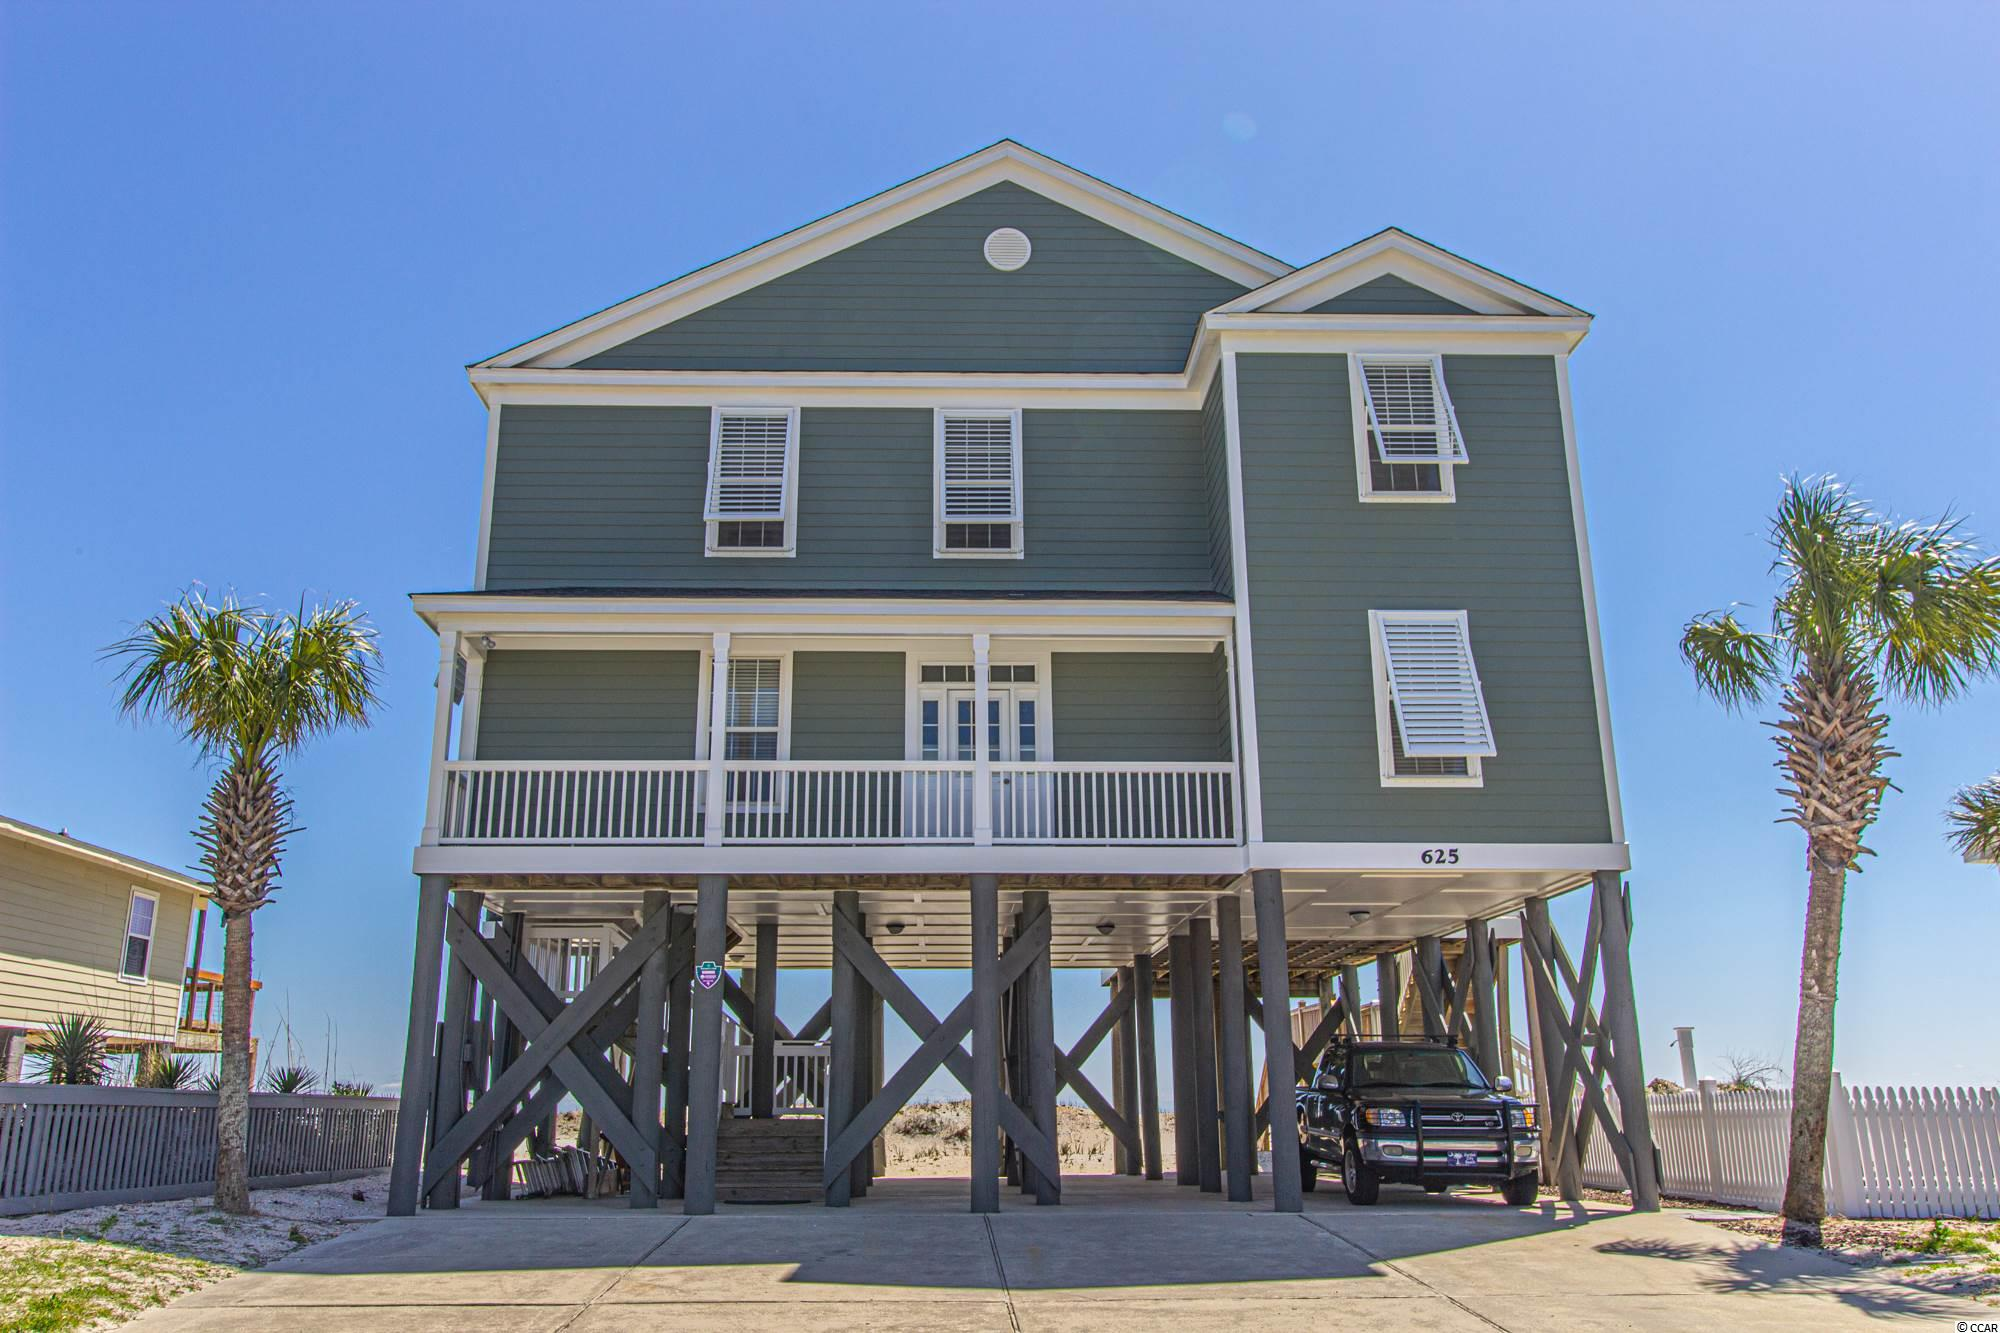 This 5BR 5.5BA Beach House has been brought back to pristine condition and a must see. 94' wide LOT, one of the largest LOTS on the Garden City Peninsula. Make this your primary home, vacation get-away or the perfect investment property. This property can bring top rental income. Jump on this in time for the peak season